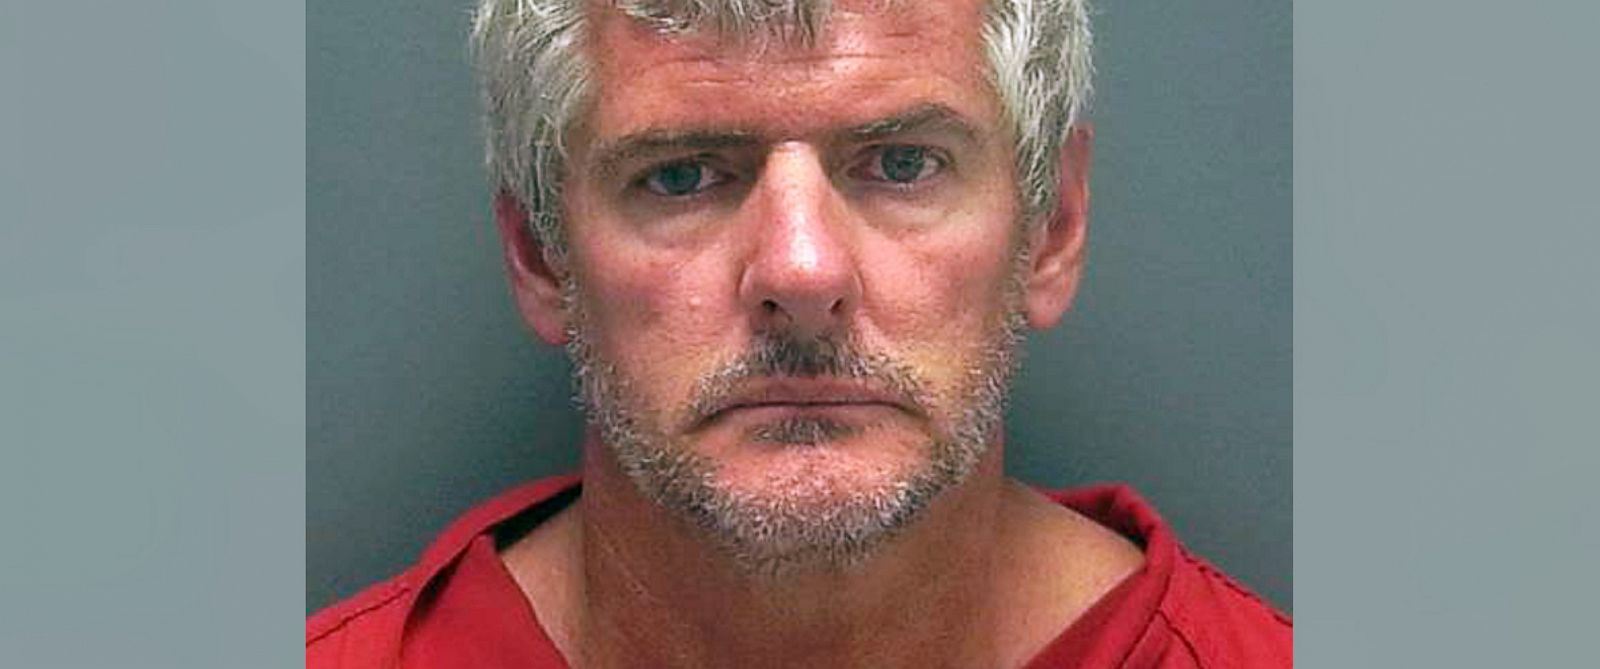 PHOTO: This 2014 booking photo provided by the Lee County, Florida Sheriffs office shows John Marshall of Fort Myers, Fla.